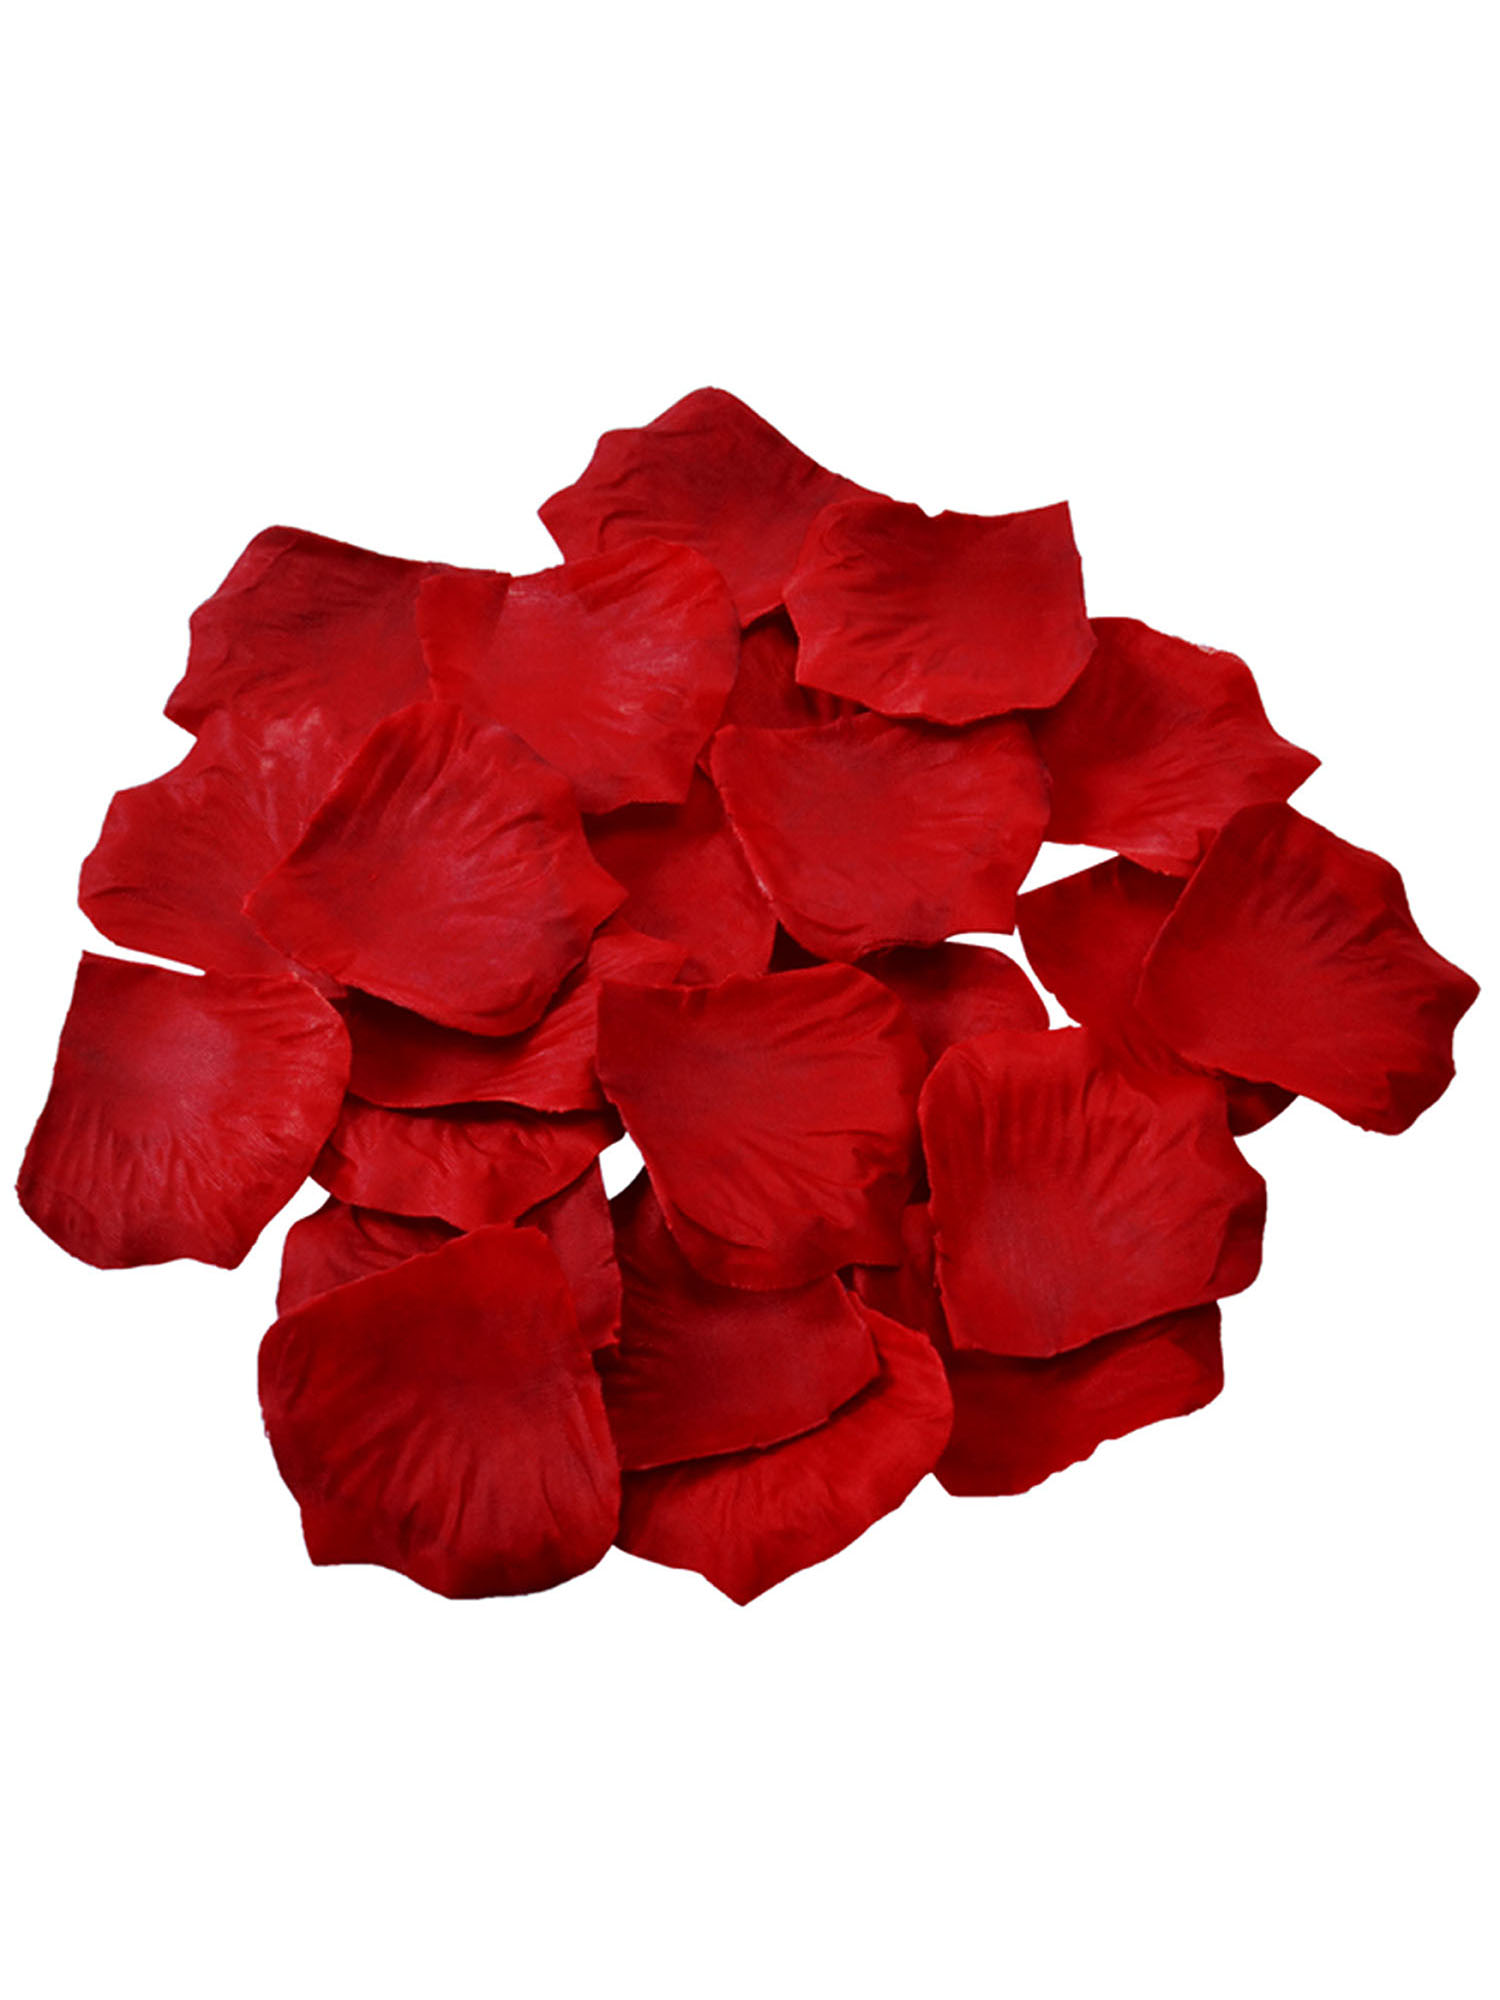 Simplicity 500pcs Silk Flower Rose Petals Wedding Party Decoration